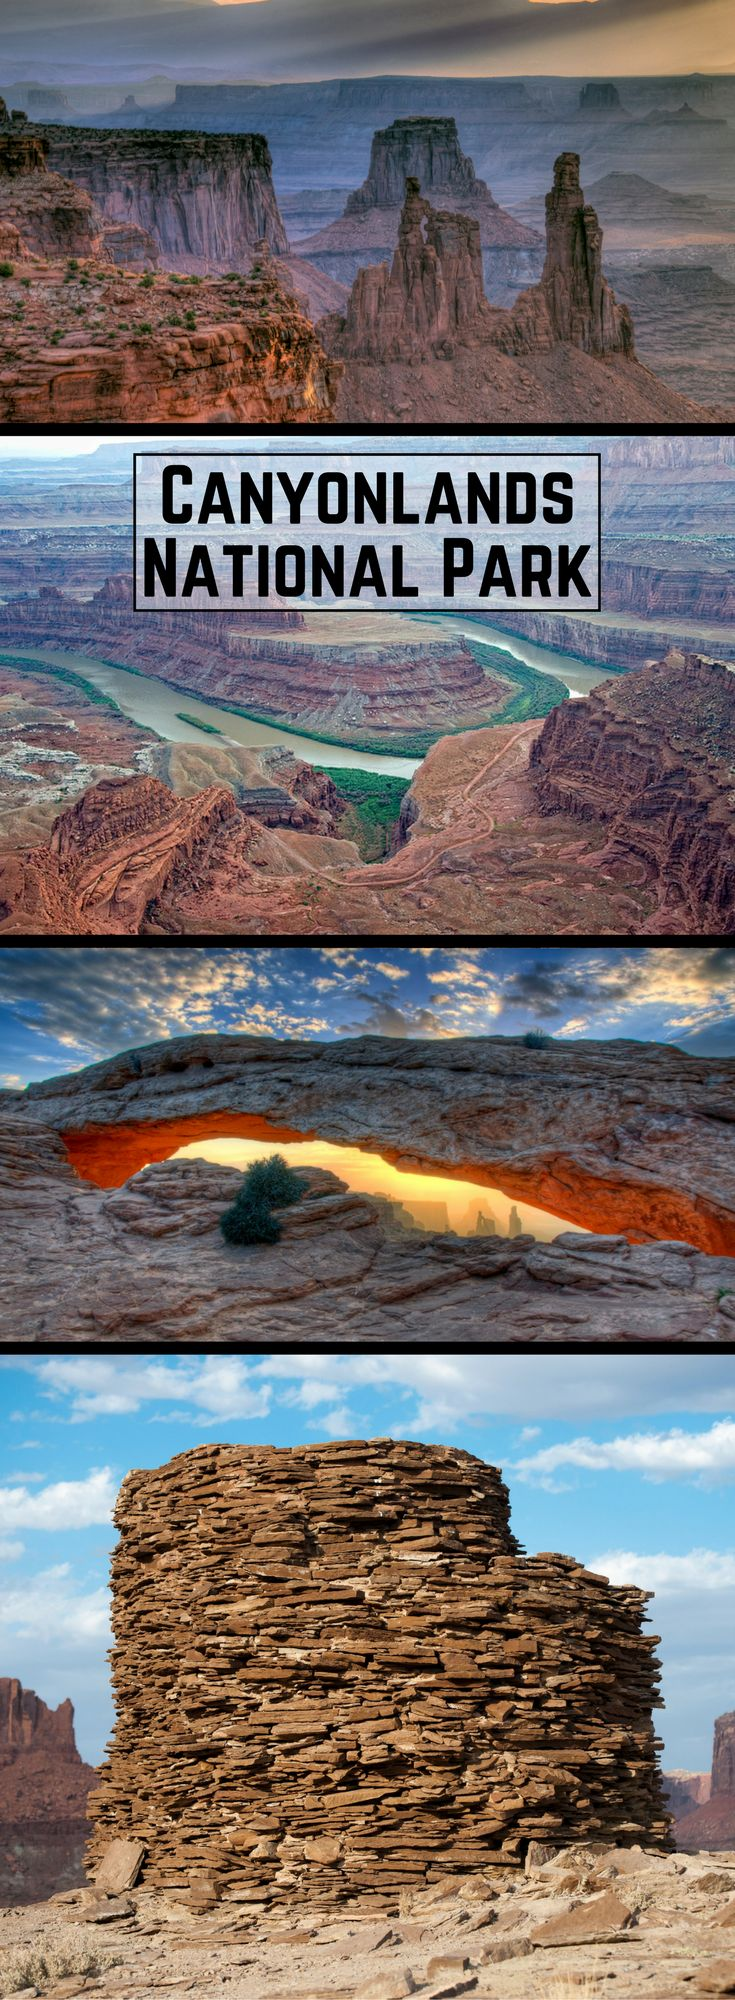 The ultimate road trip guide to Canyonlands National Park